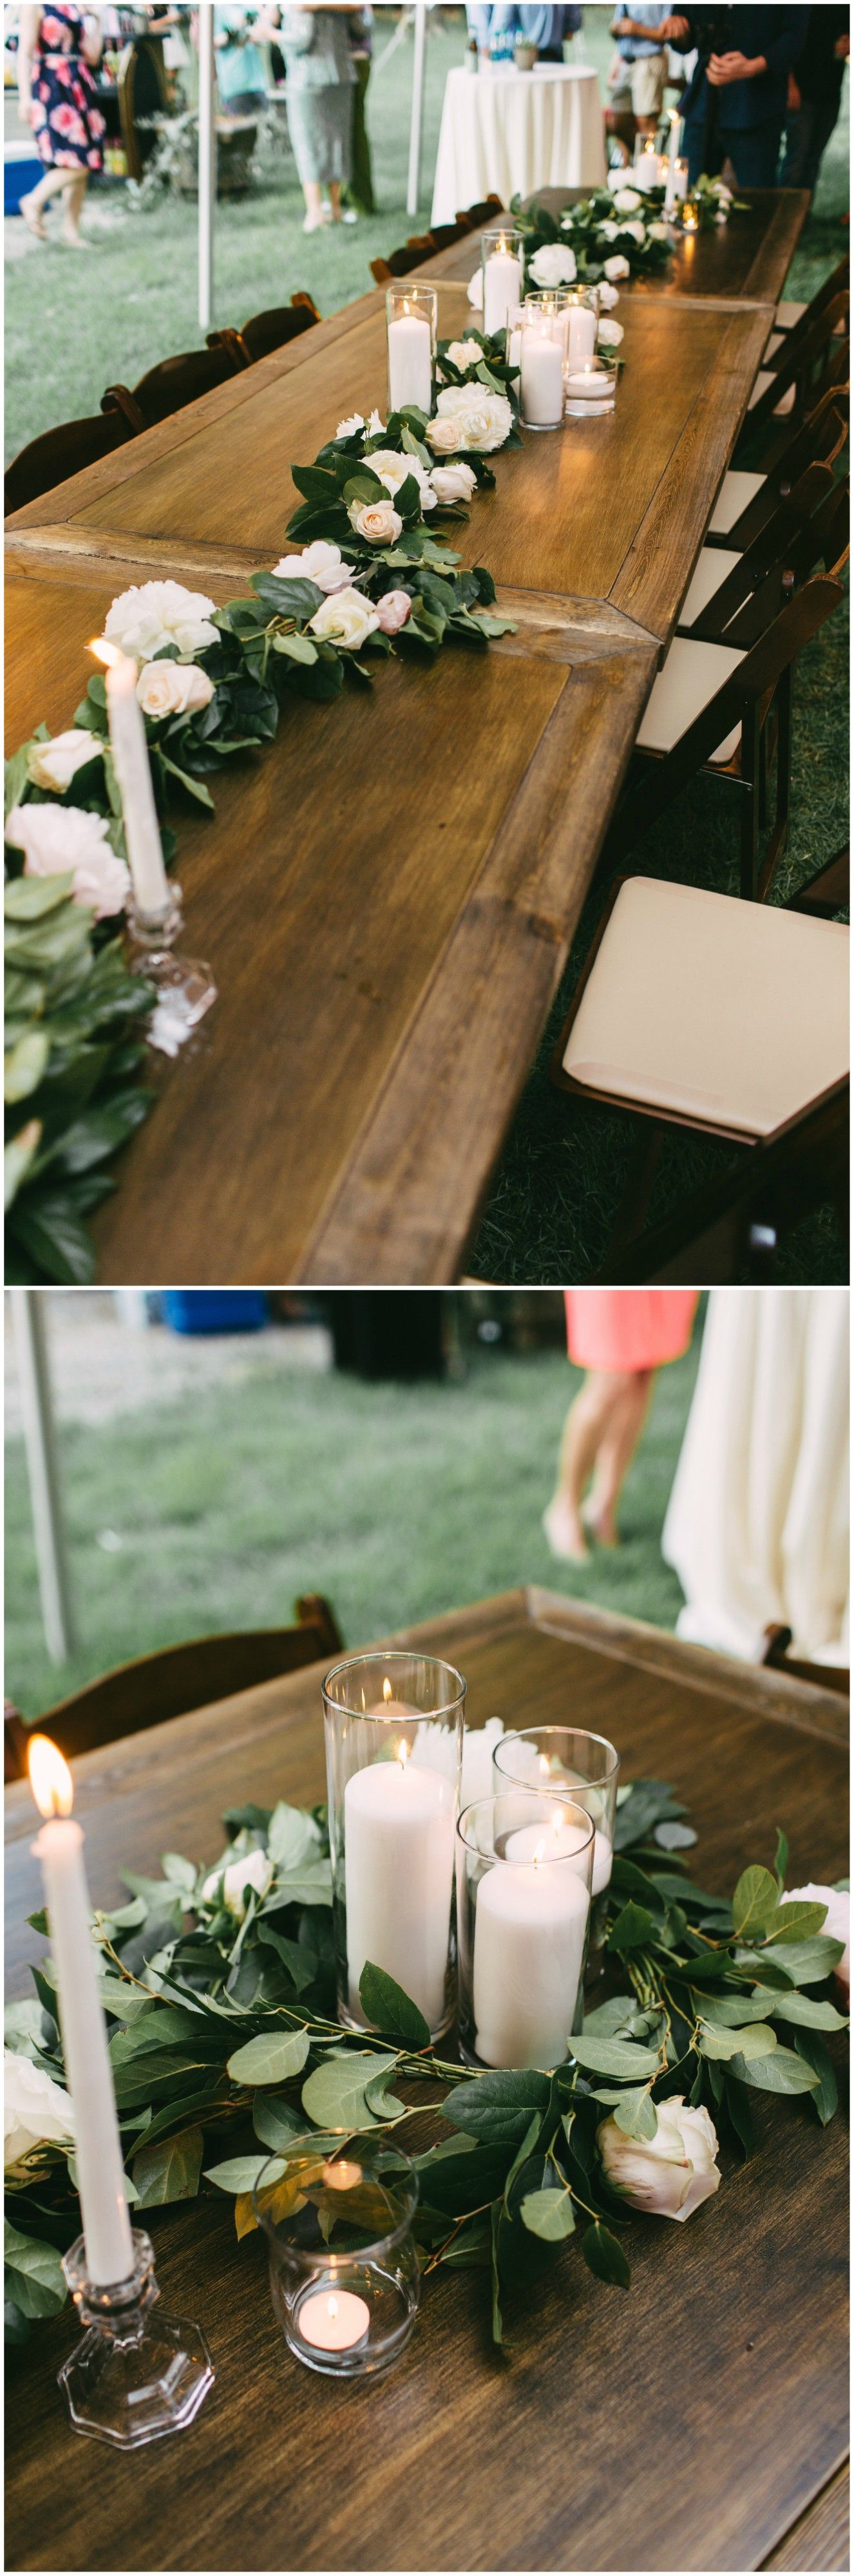 Classic Outdoor Wedding With California Flair - Once Wed  |Outdoor Wedding Reception Head Table